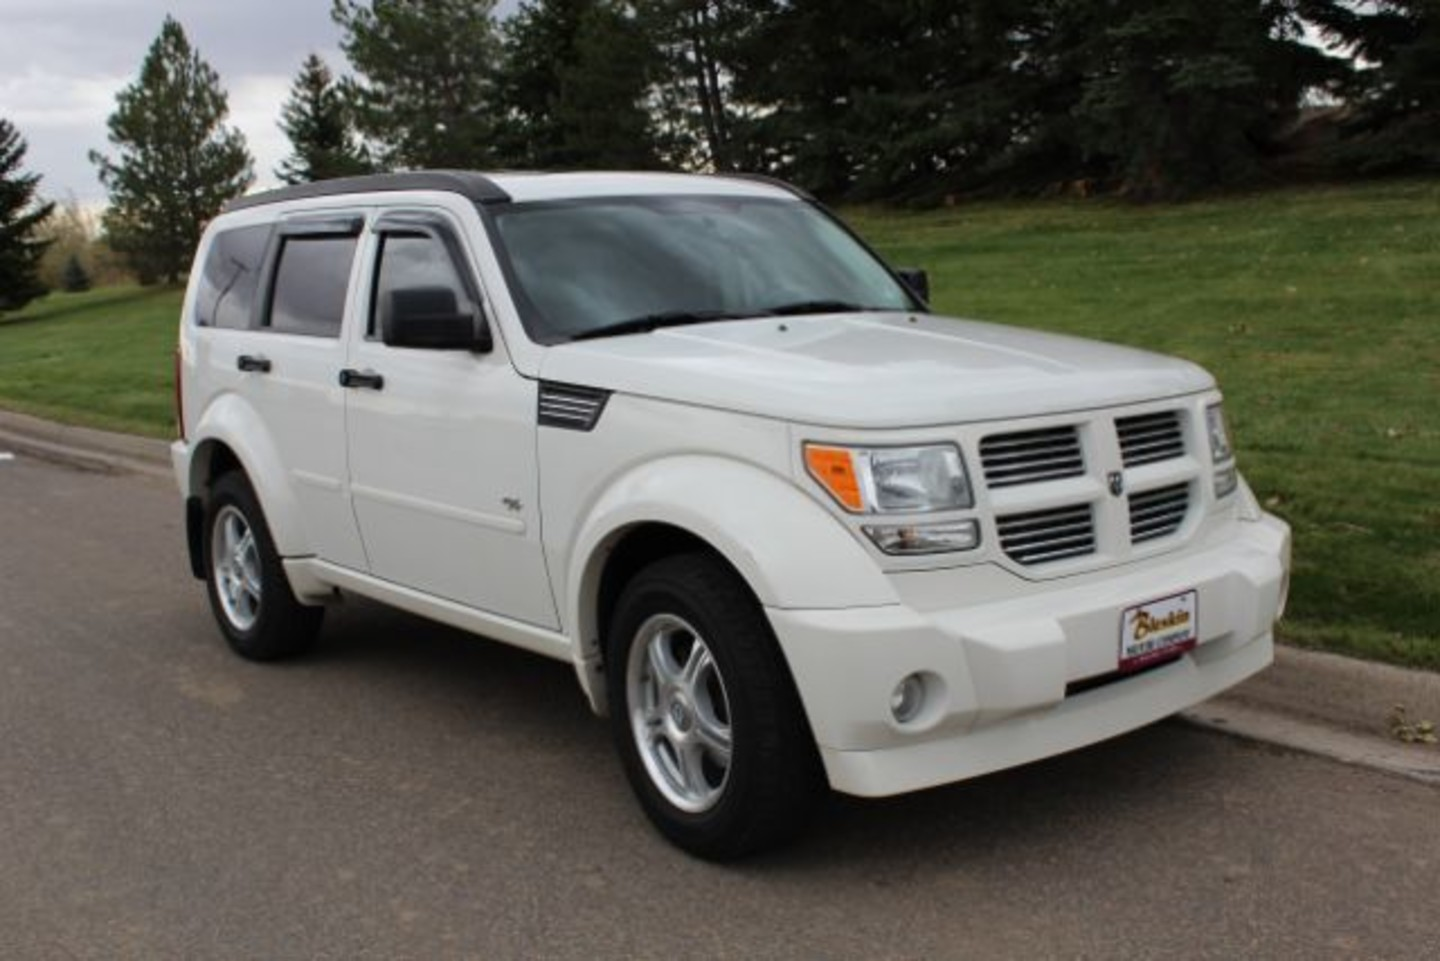 2008 dodge nitro rt city montana bleskin motor company. Black Bedroom Furniture Sets. Home Design Ideas